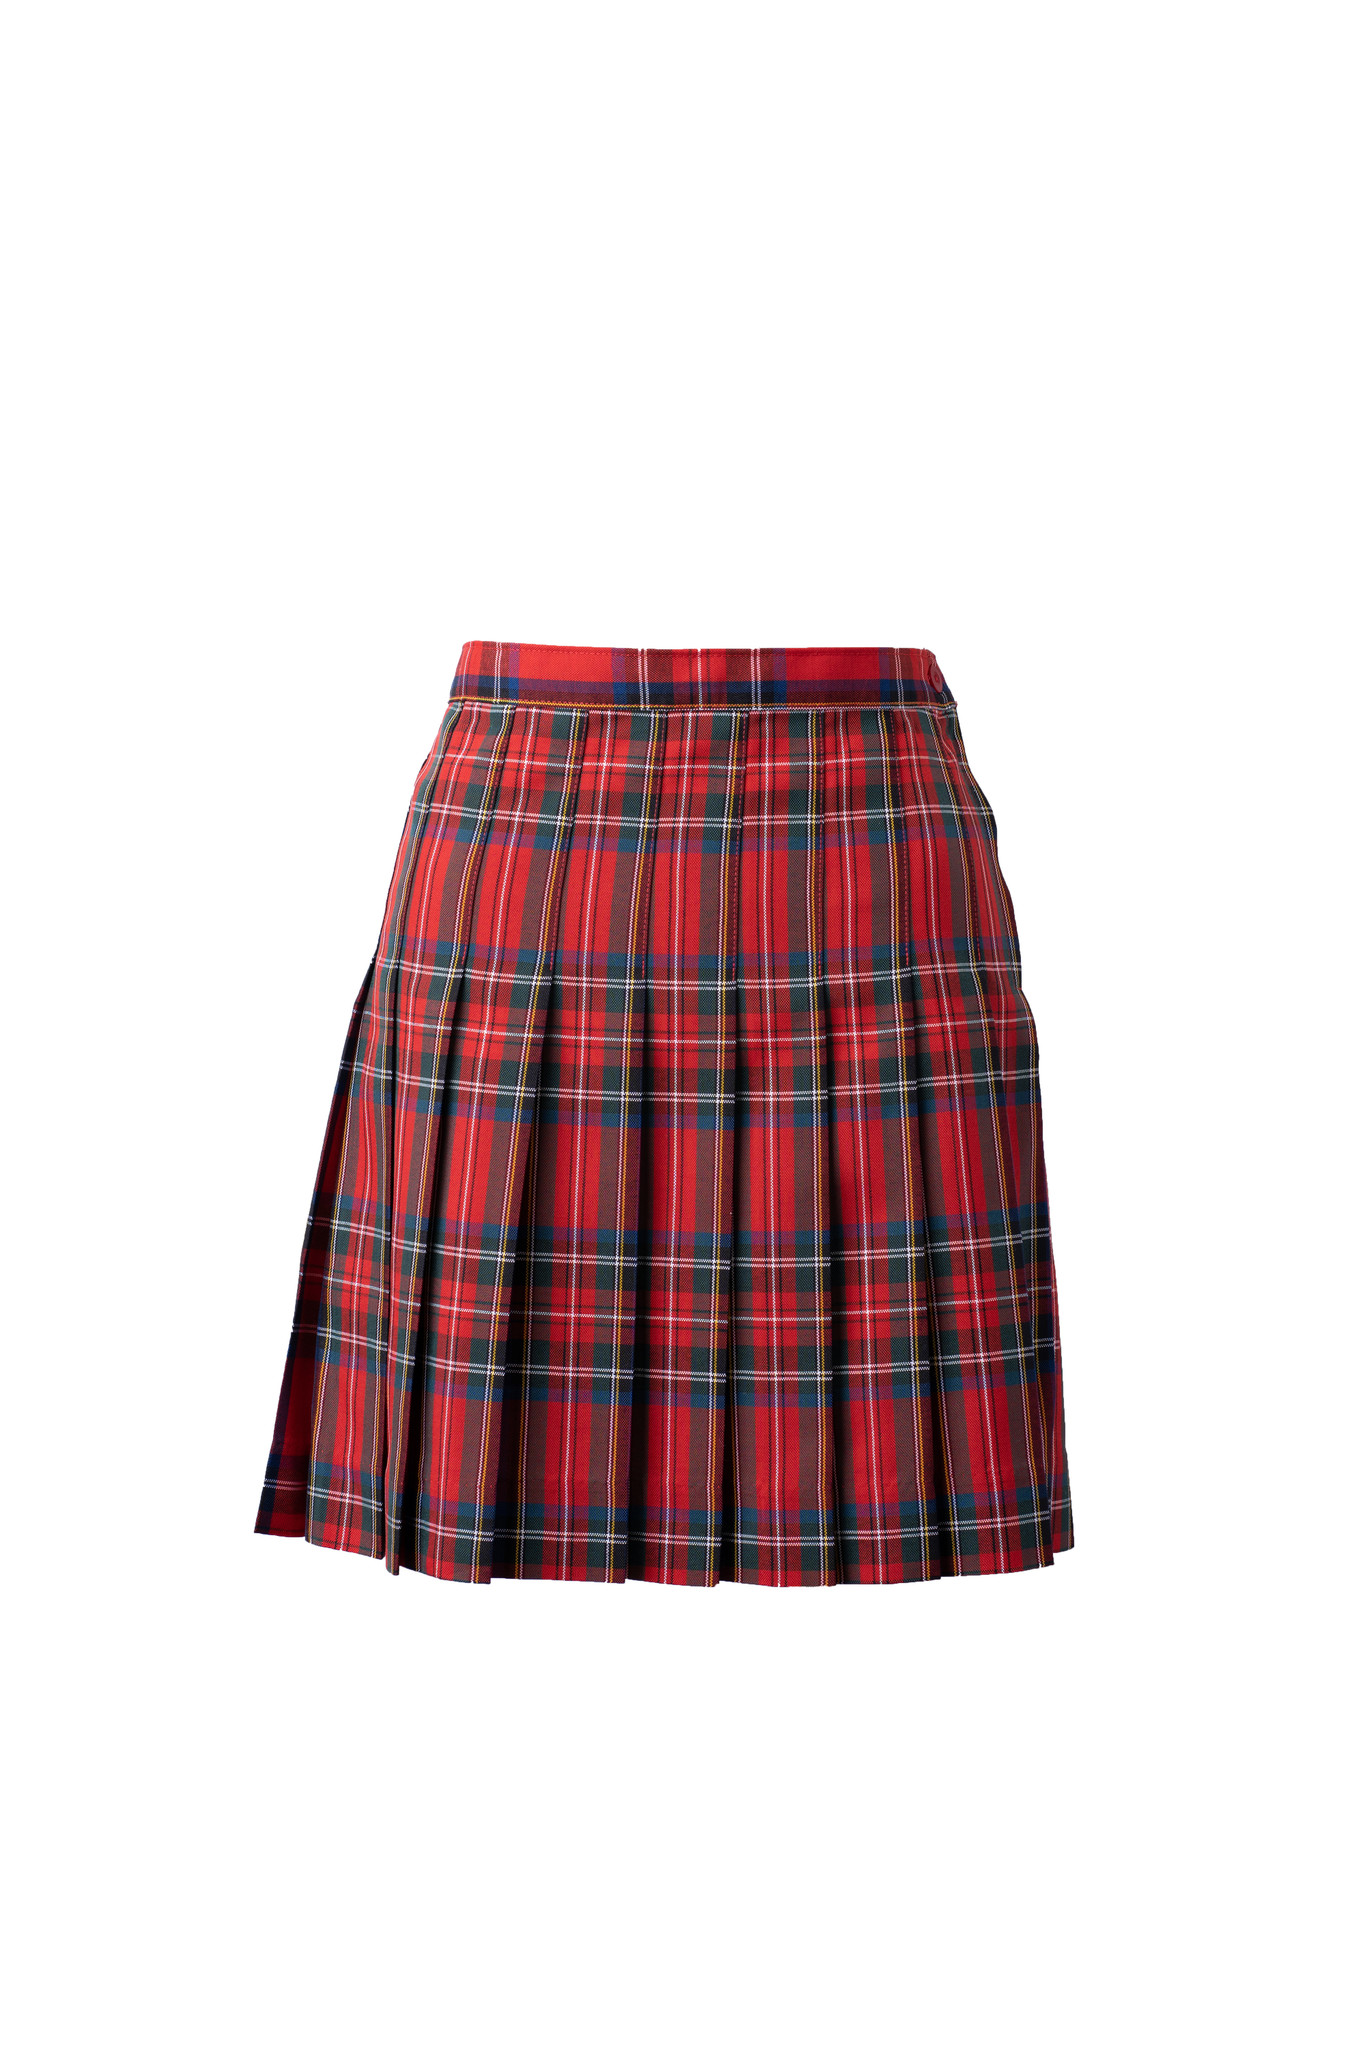 Flintridge Sacred Heart Red Plaid Skirt